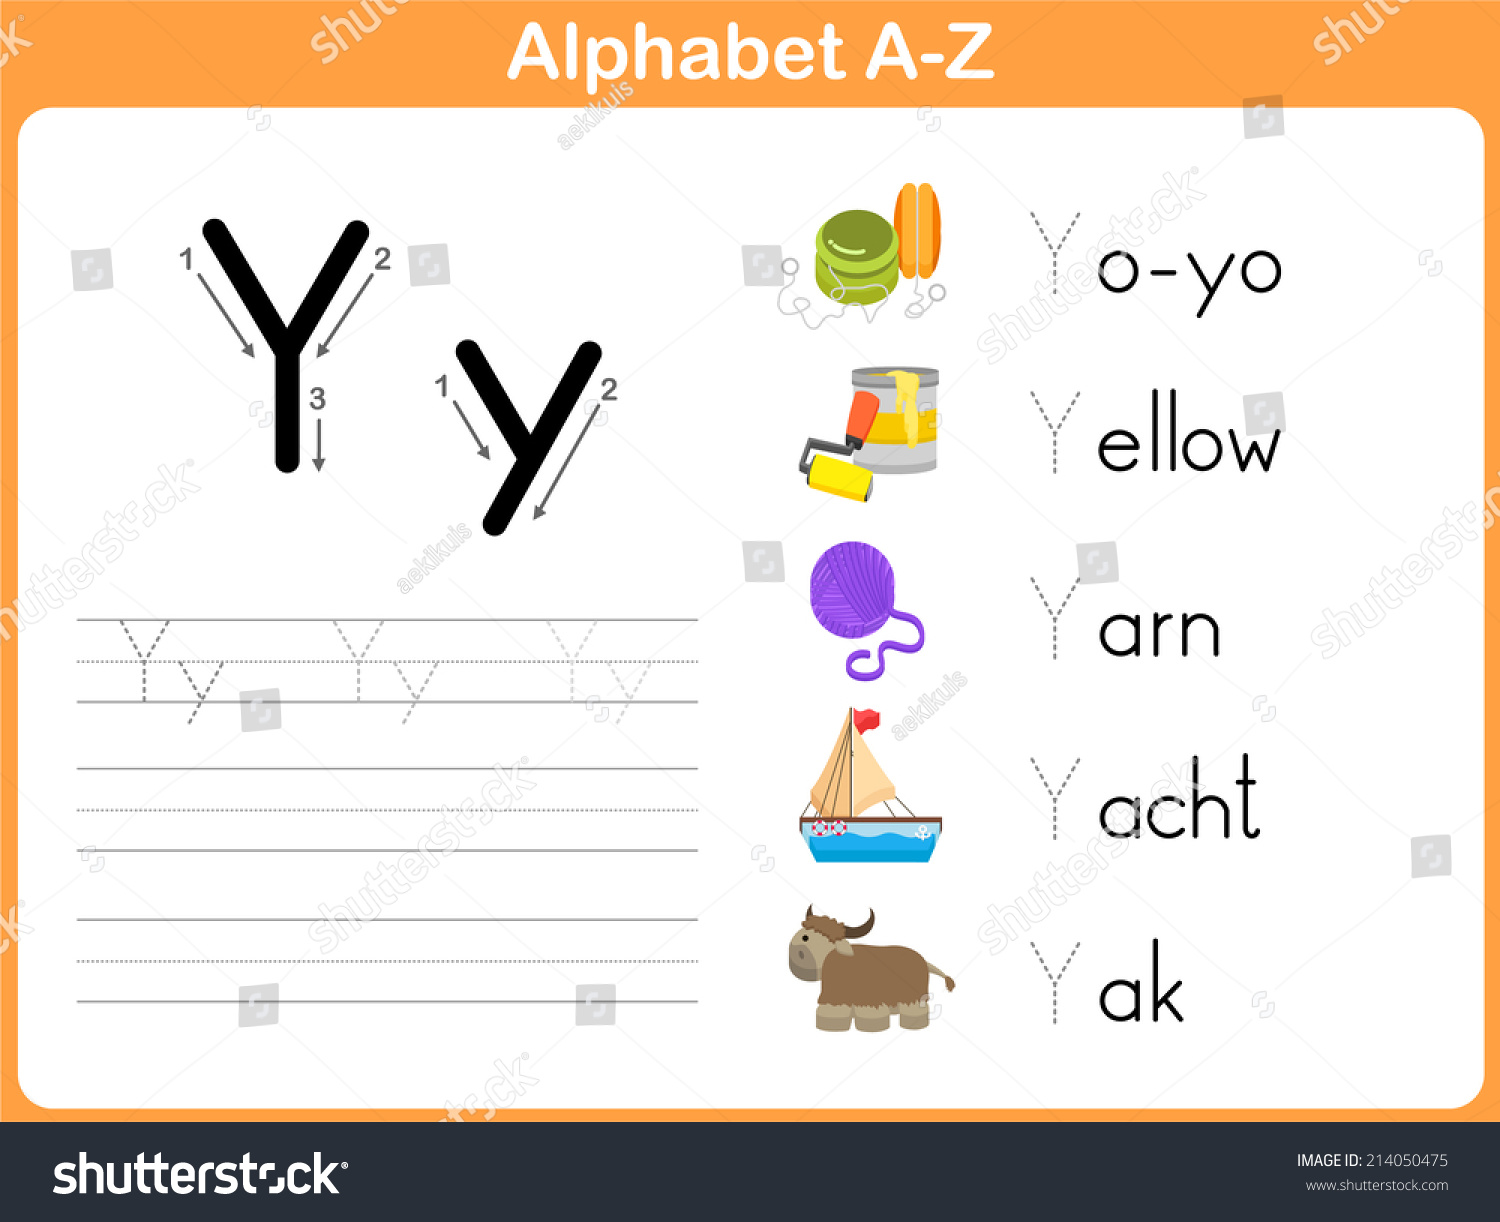 Worksheet Of Alphabets A To Z